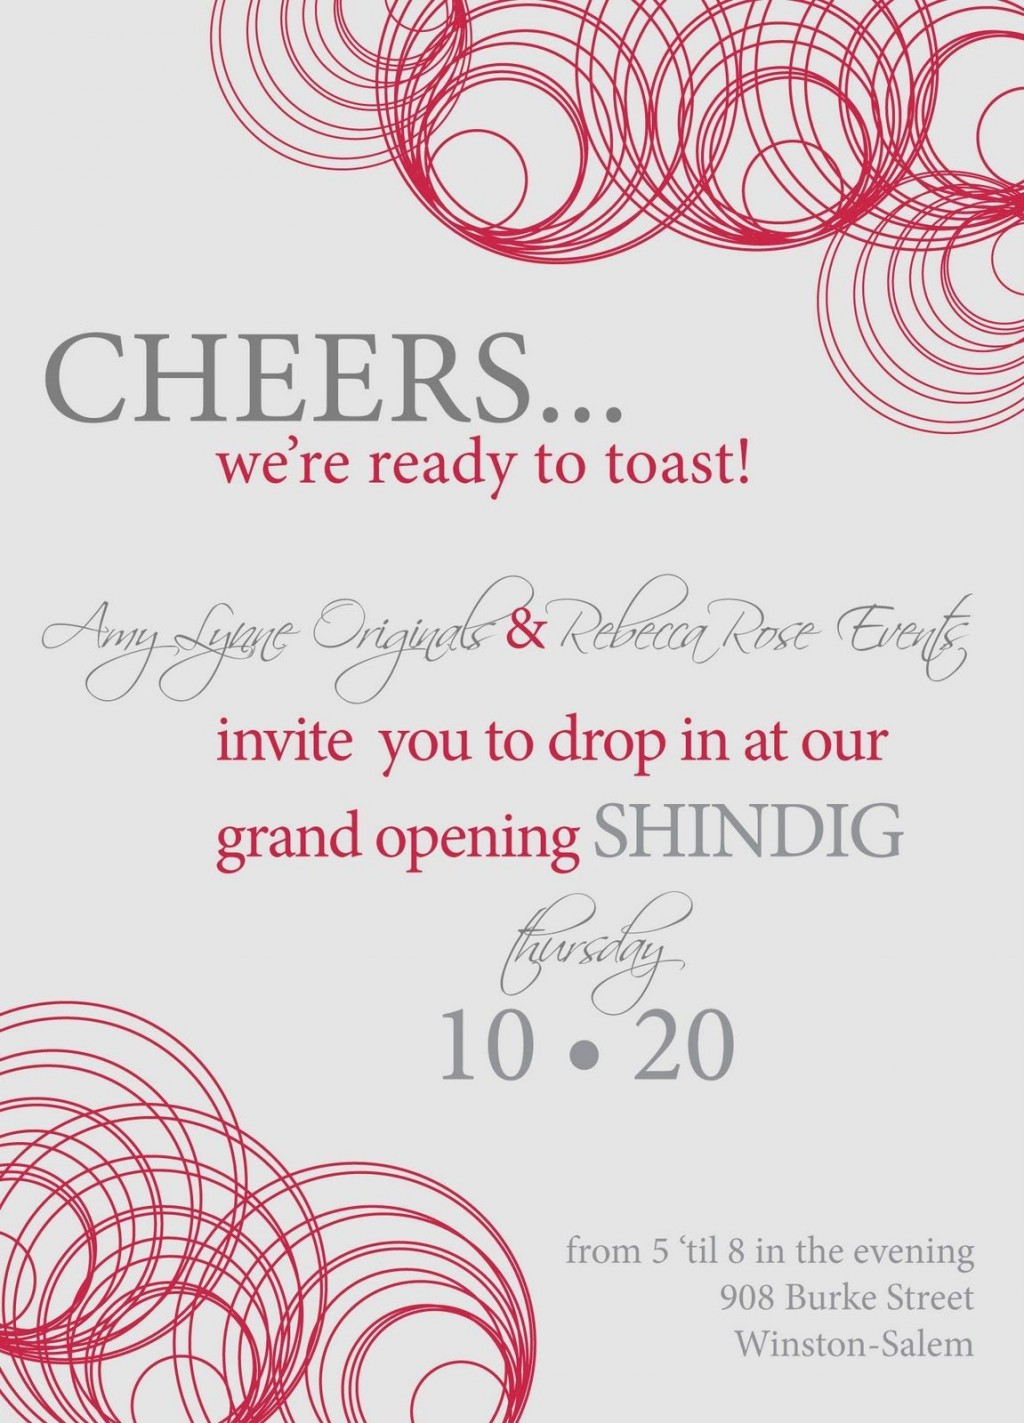 002 Imposing Open House Invitation Template Sample  Templates Free Printable BusinesLarge